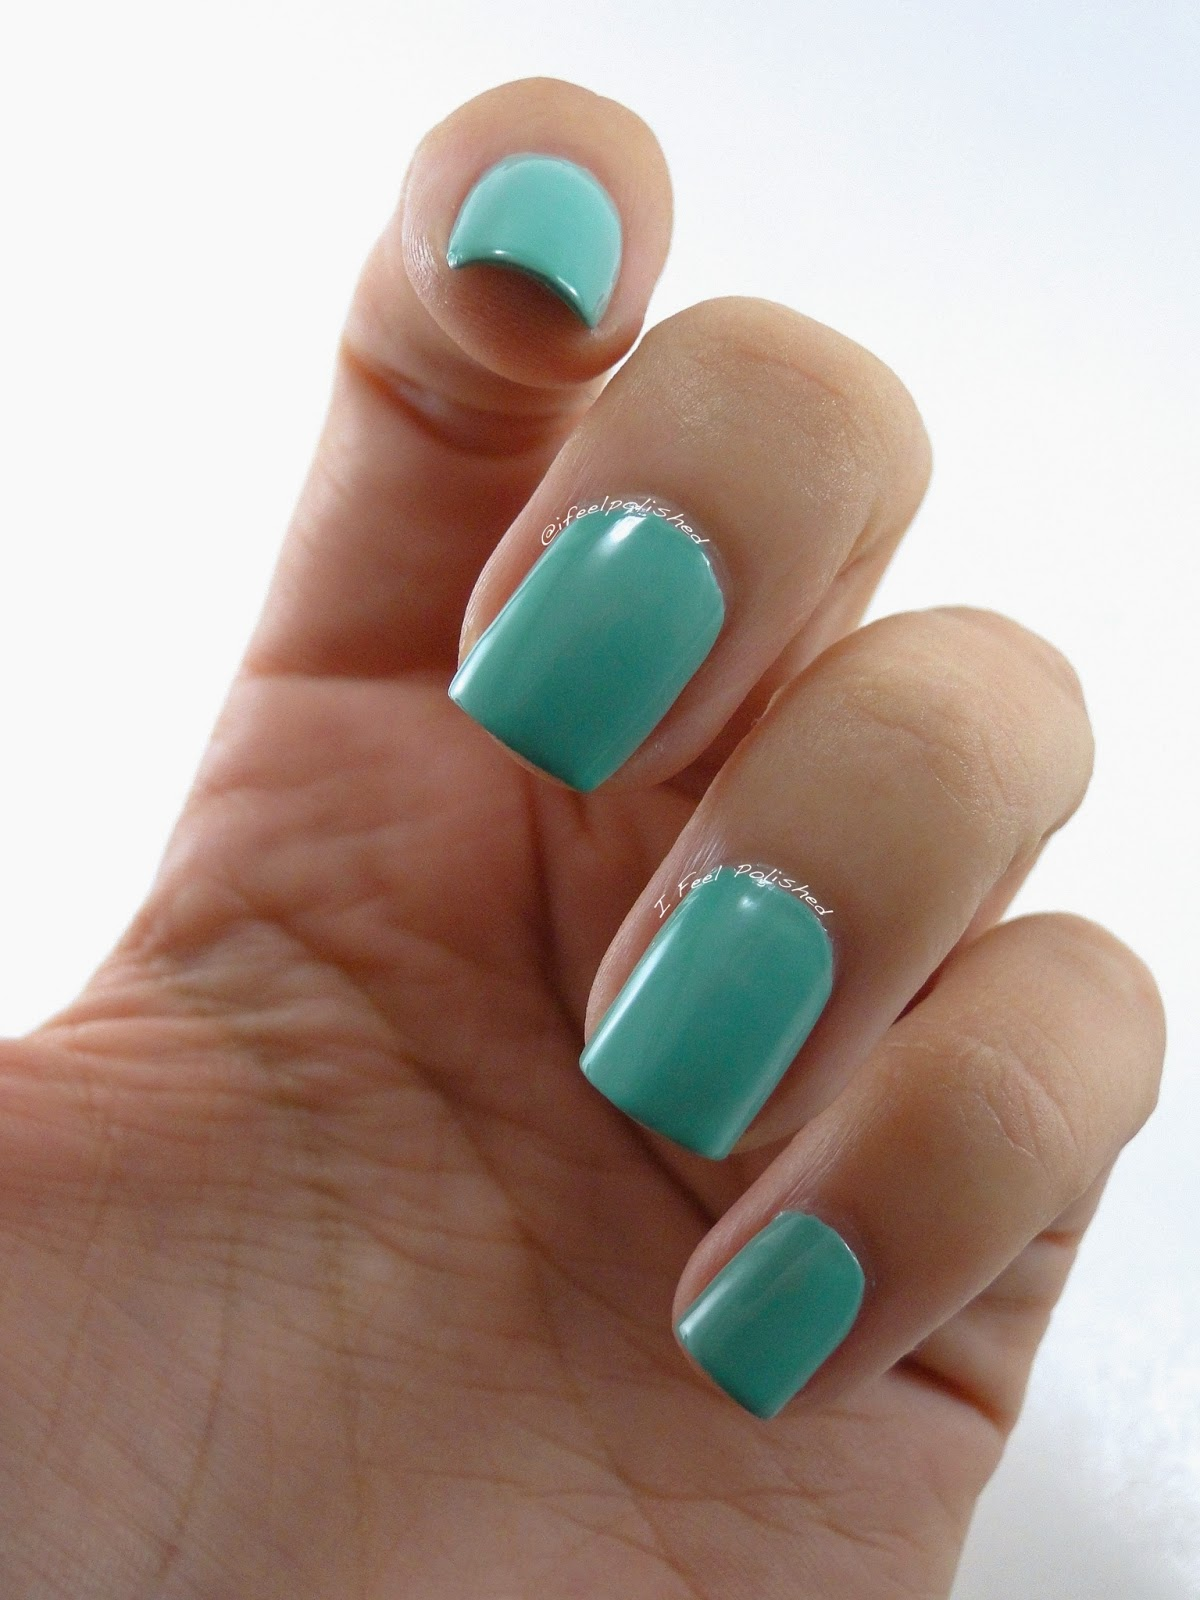 Tiffany Blue Nail Polish